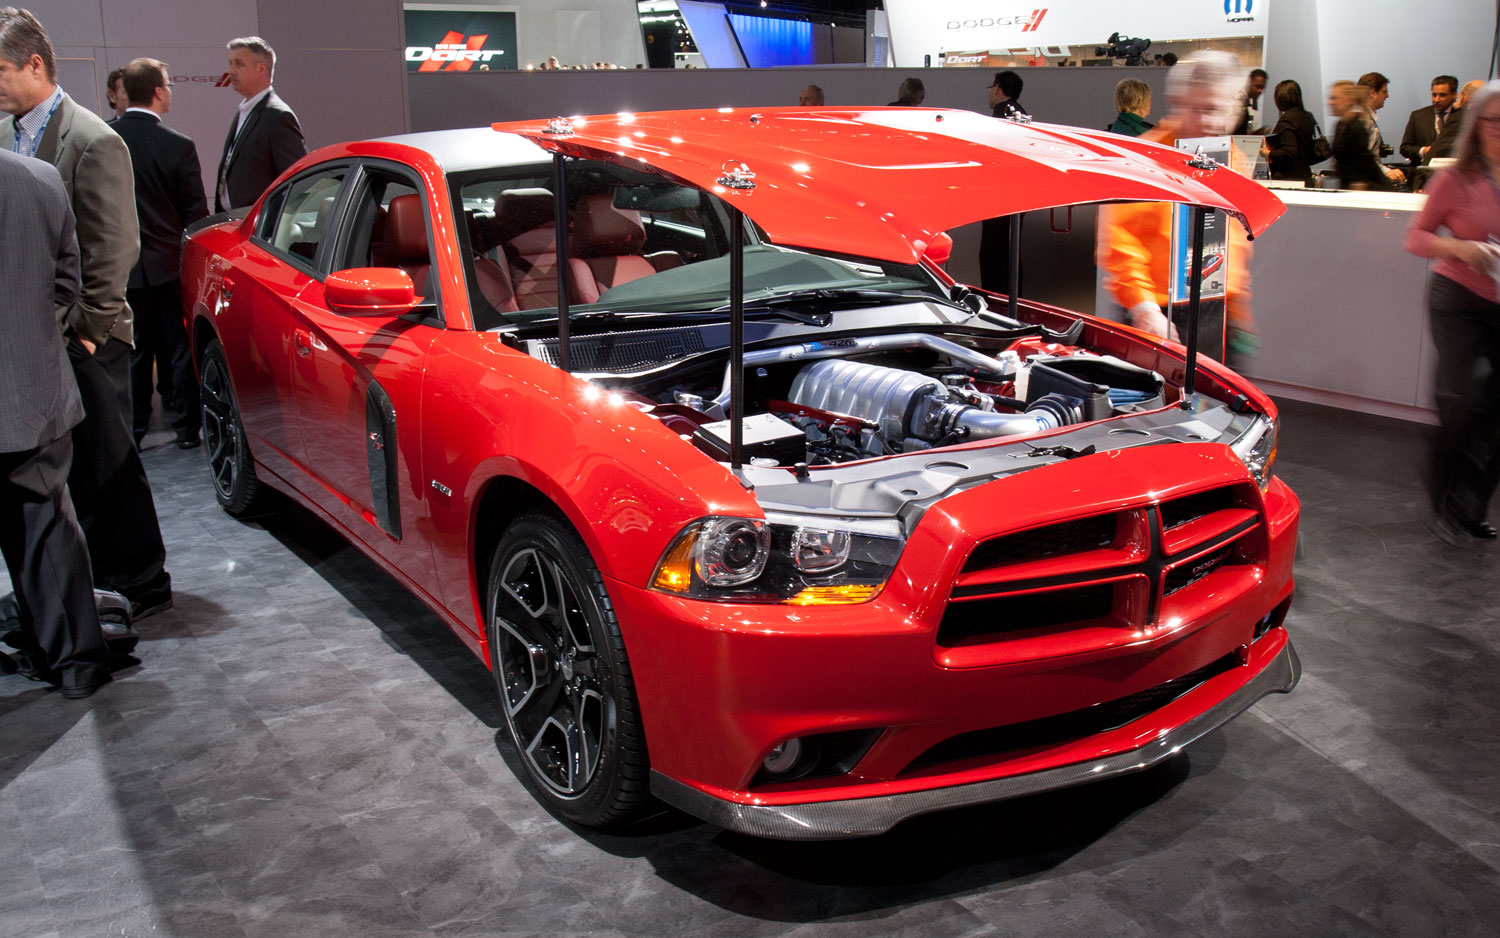 detroit 2012 mopar makes a mean looking dodge charger chrysler 200 s. Black Bedroom Furniture Sets. Home Design Ideas